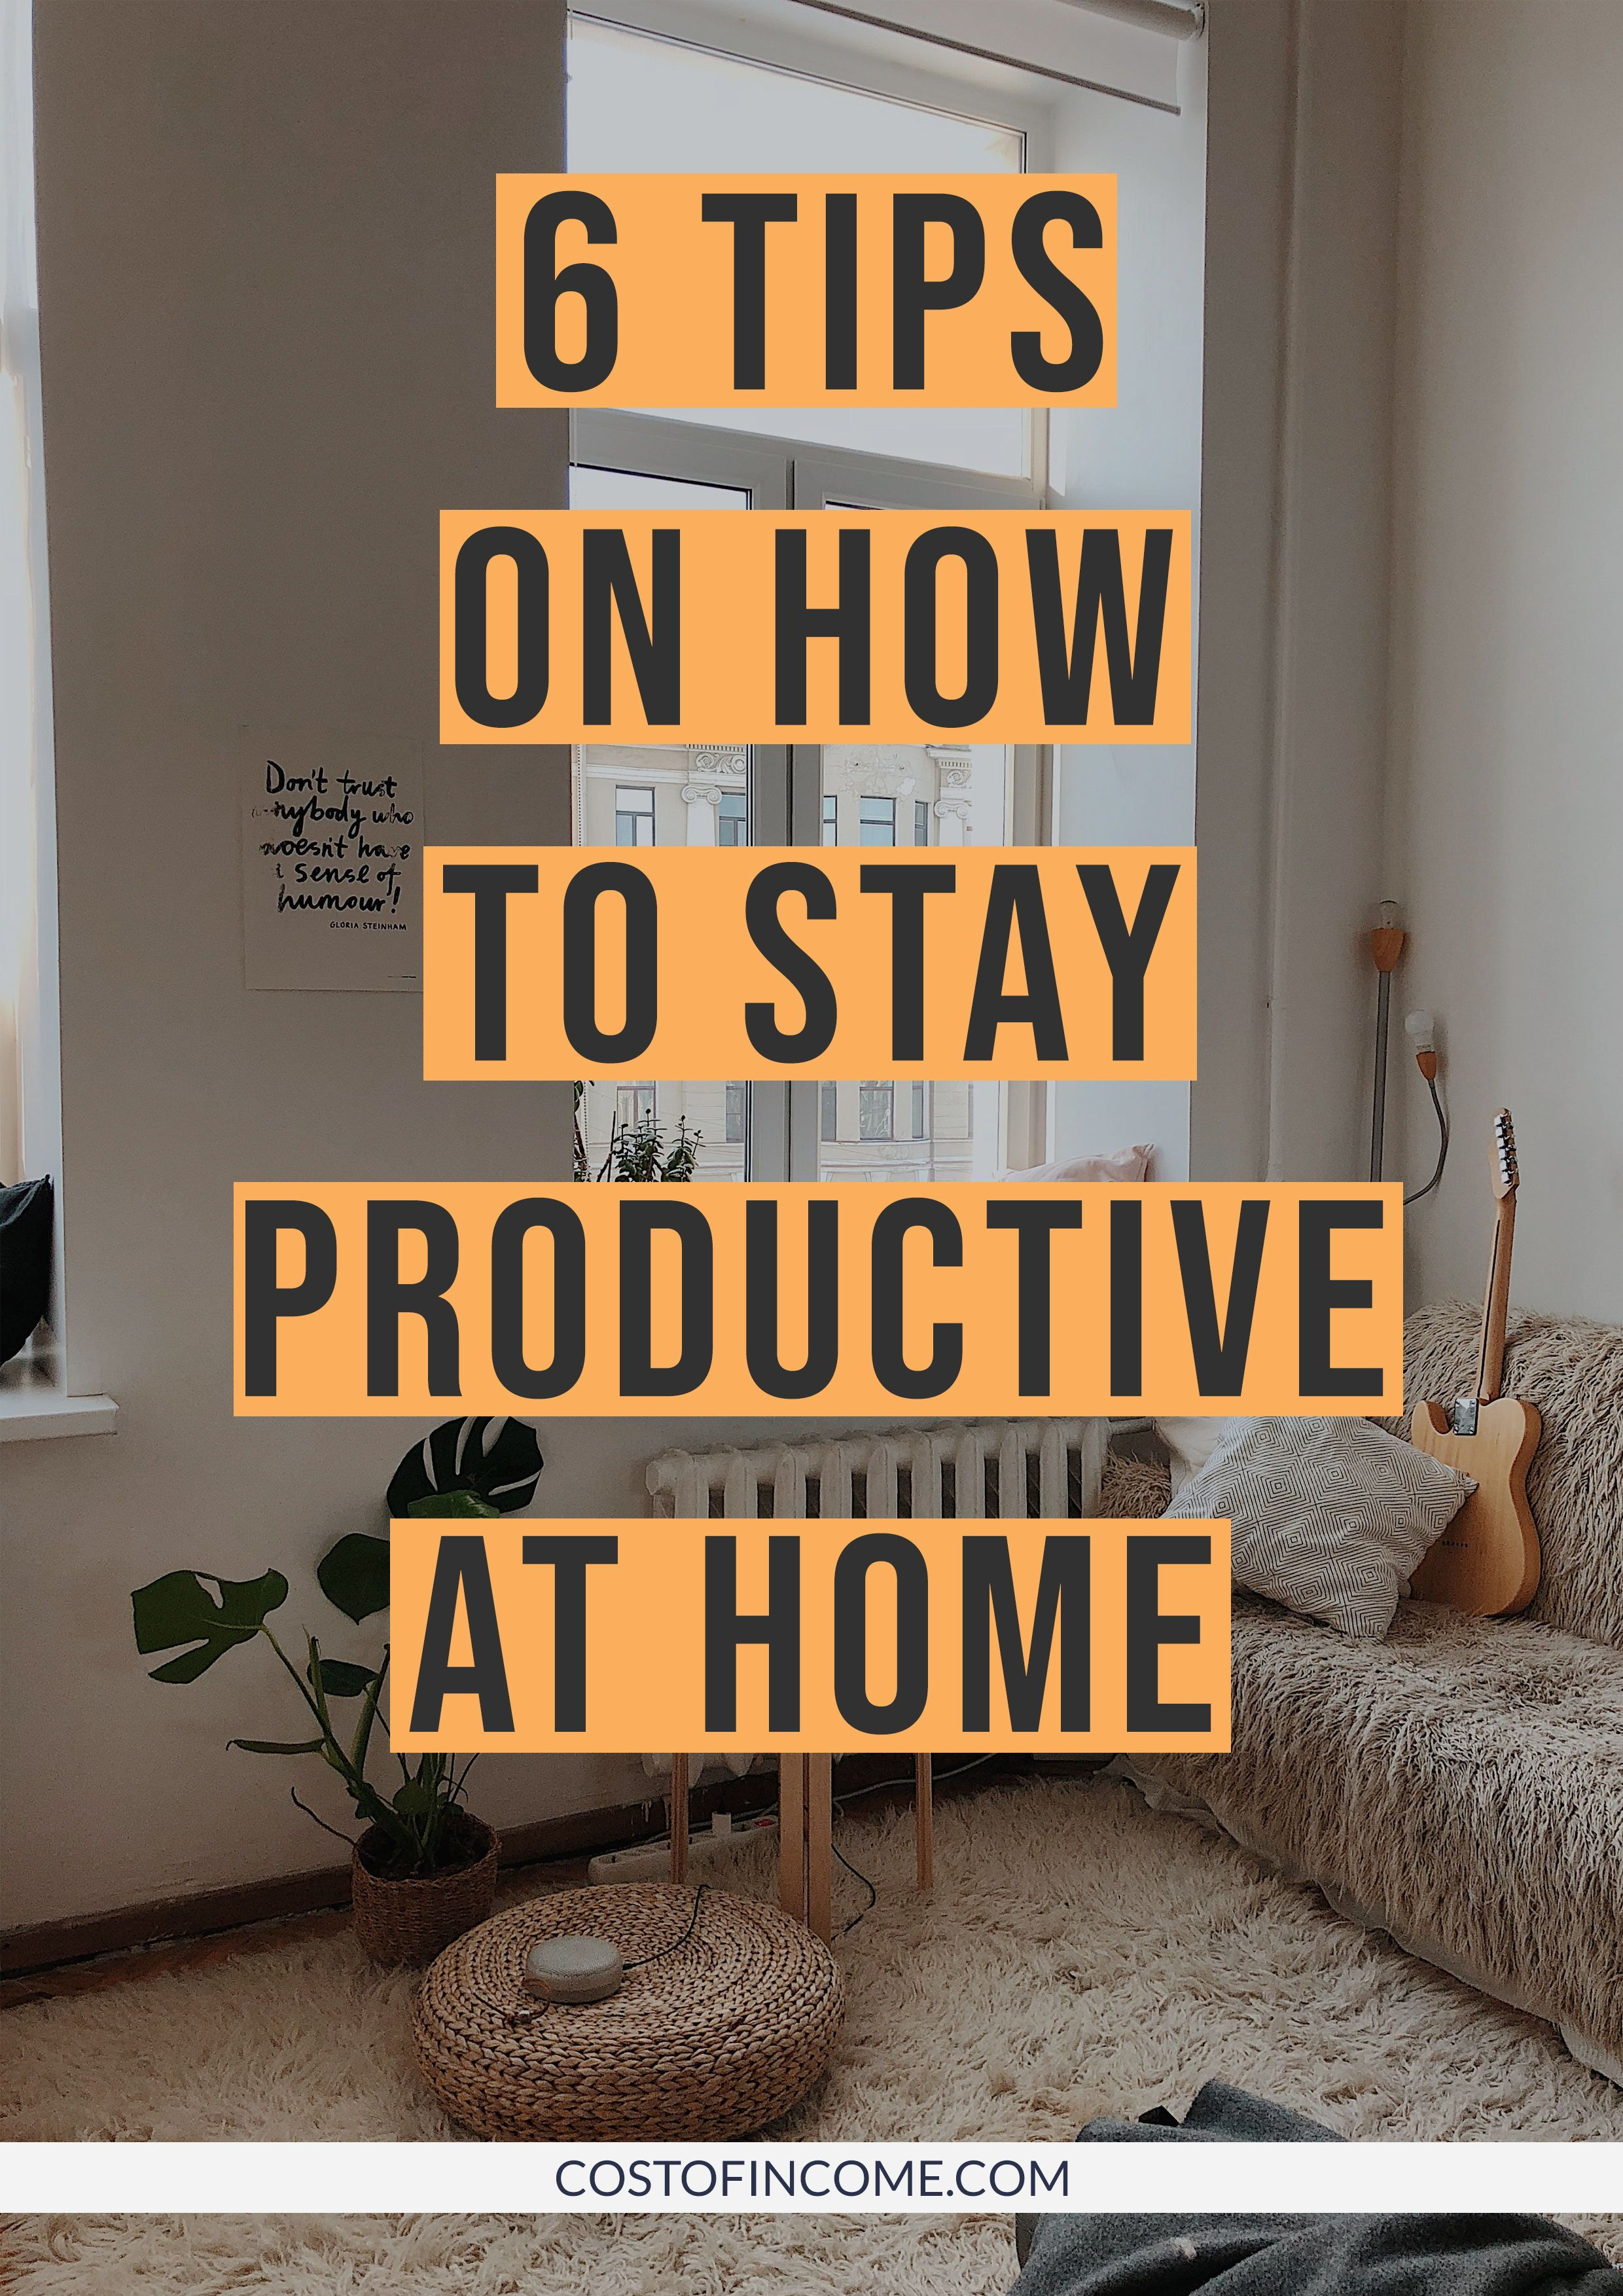 How To Stay Productive At Home Cost Of Income Life Hacks Pictures Tips Life Hacks Websites